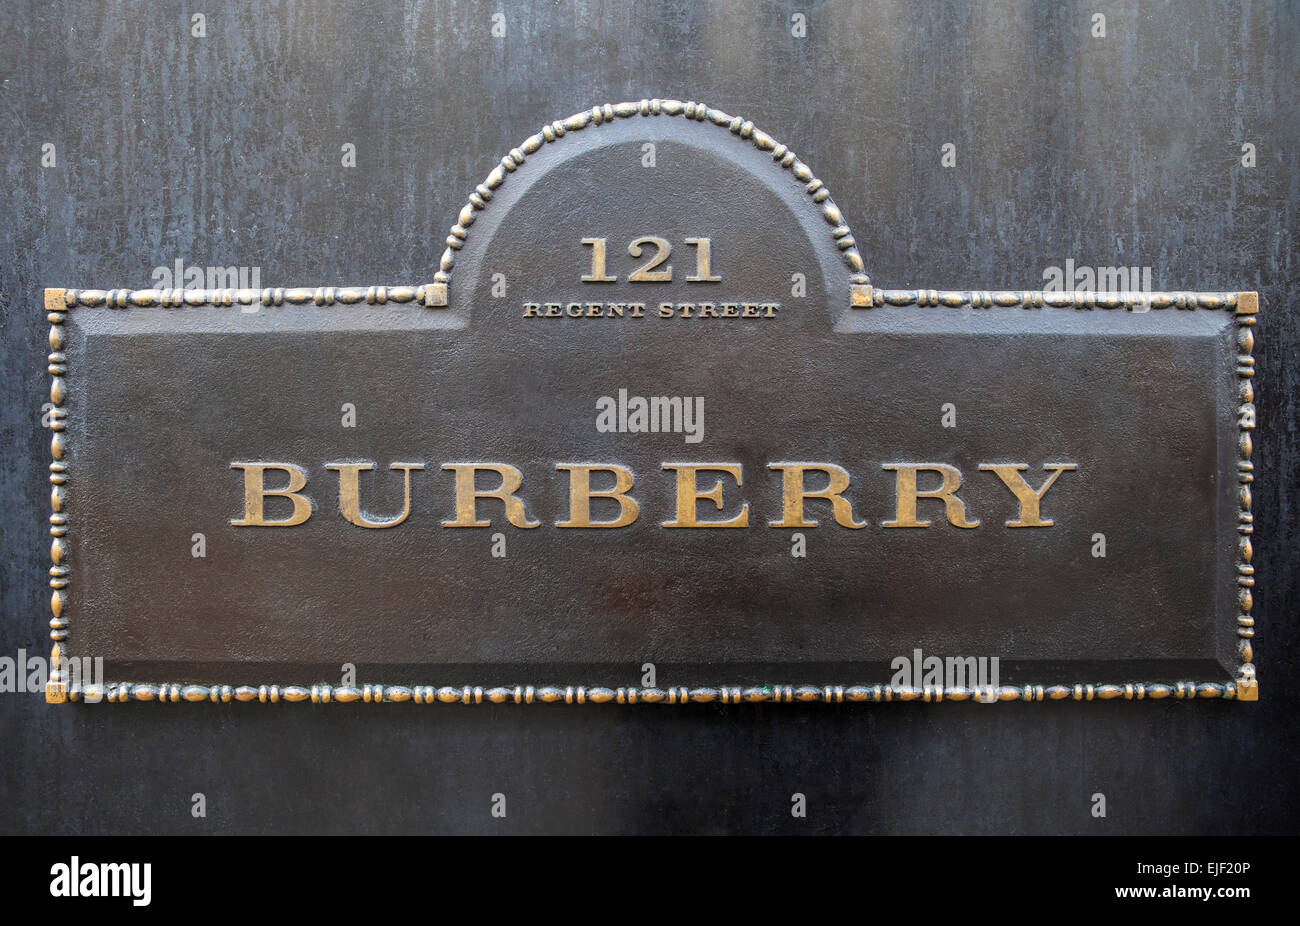 LONDON, UK - MARCH 22ND 2015: A sign for the Burberry clothing store on Regent Street in London on 22nd March 2015. - Stock Image